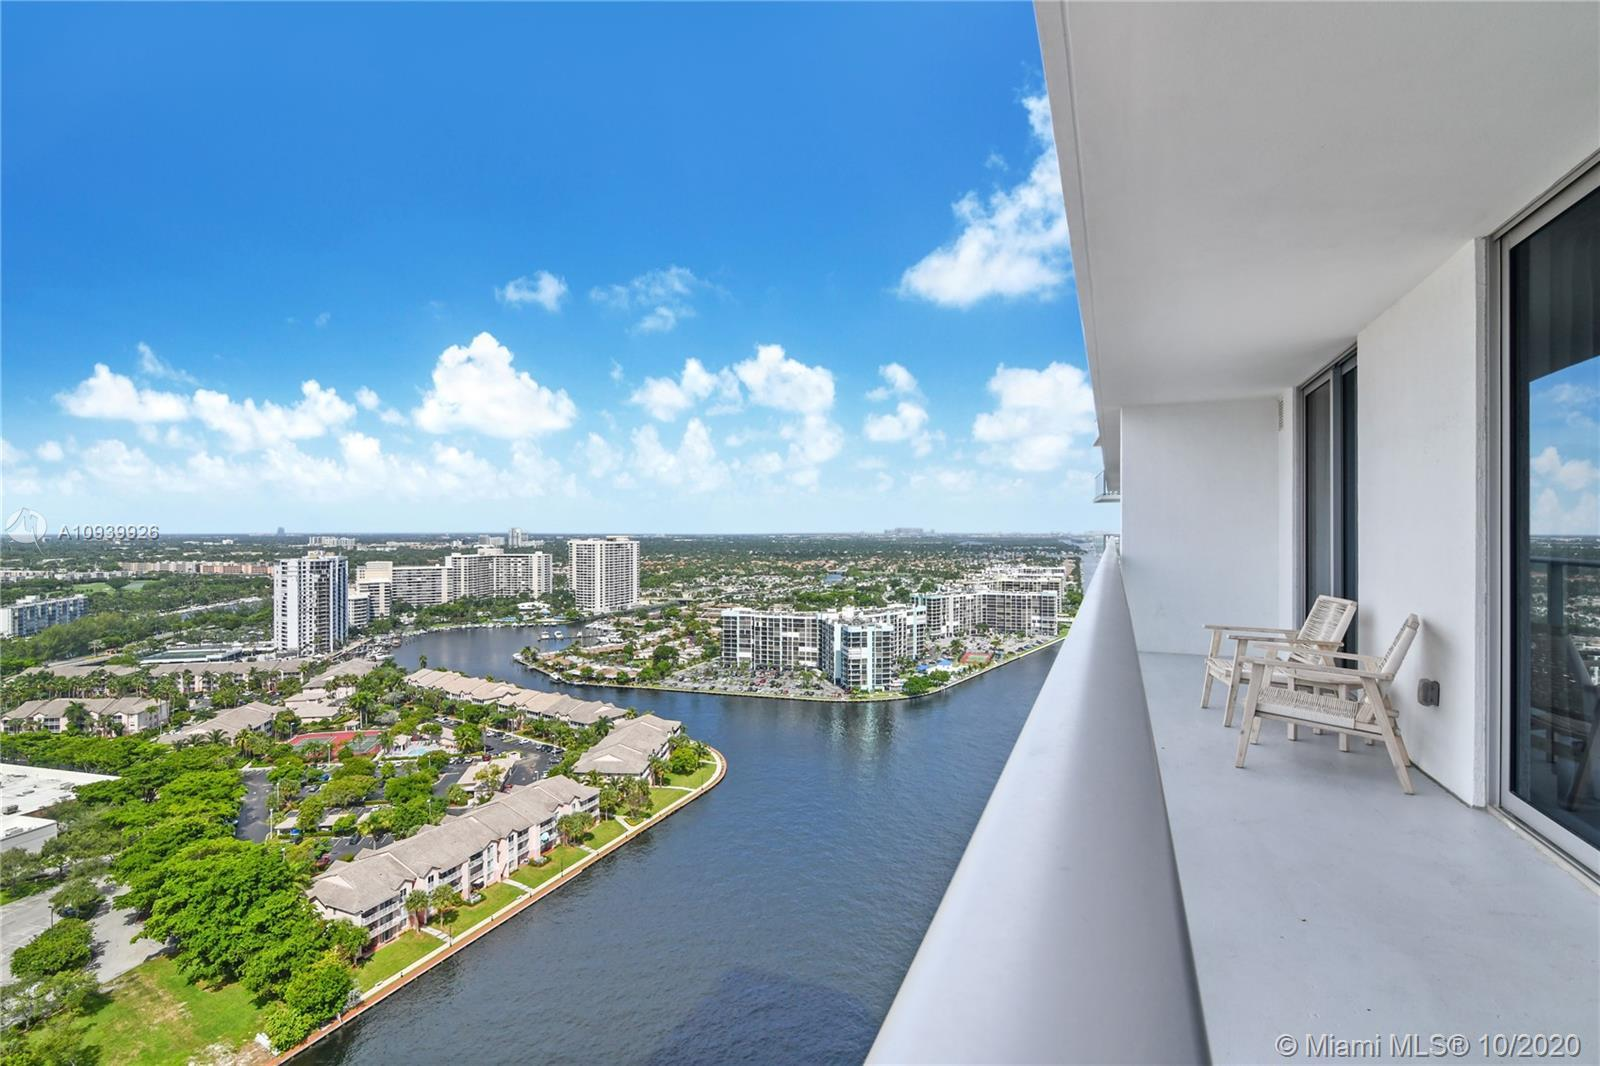 Stylish and elegant with spectacular city and Intracoastal views, 1Bed 1.5 bath in 795 SQ FT and 325